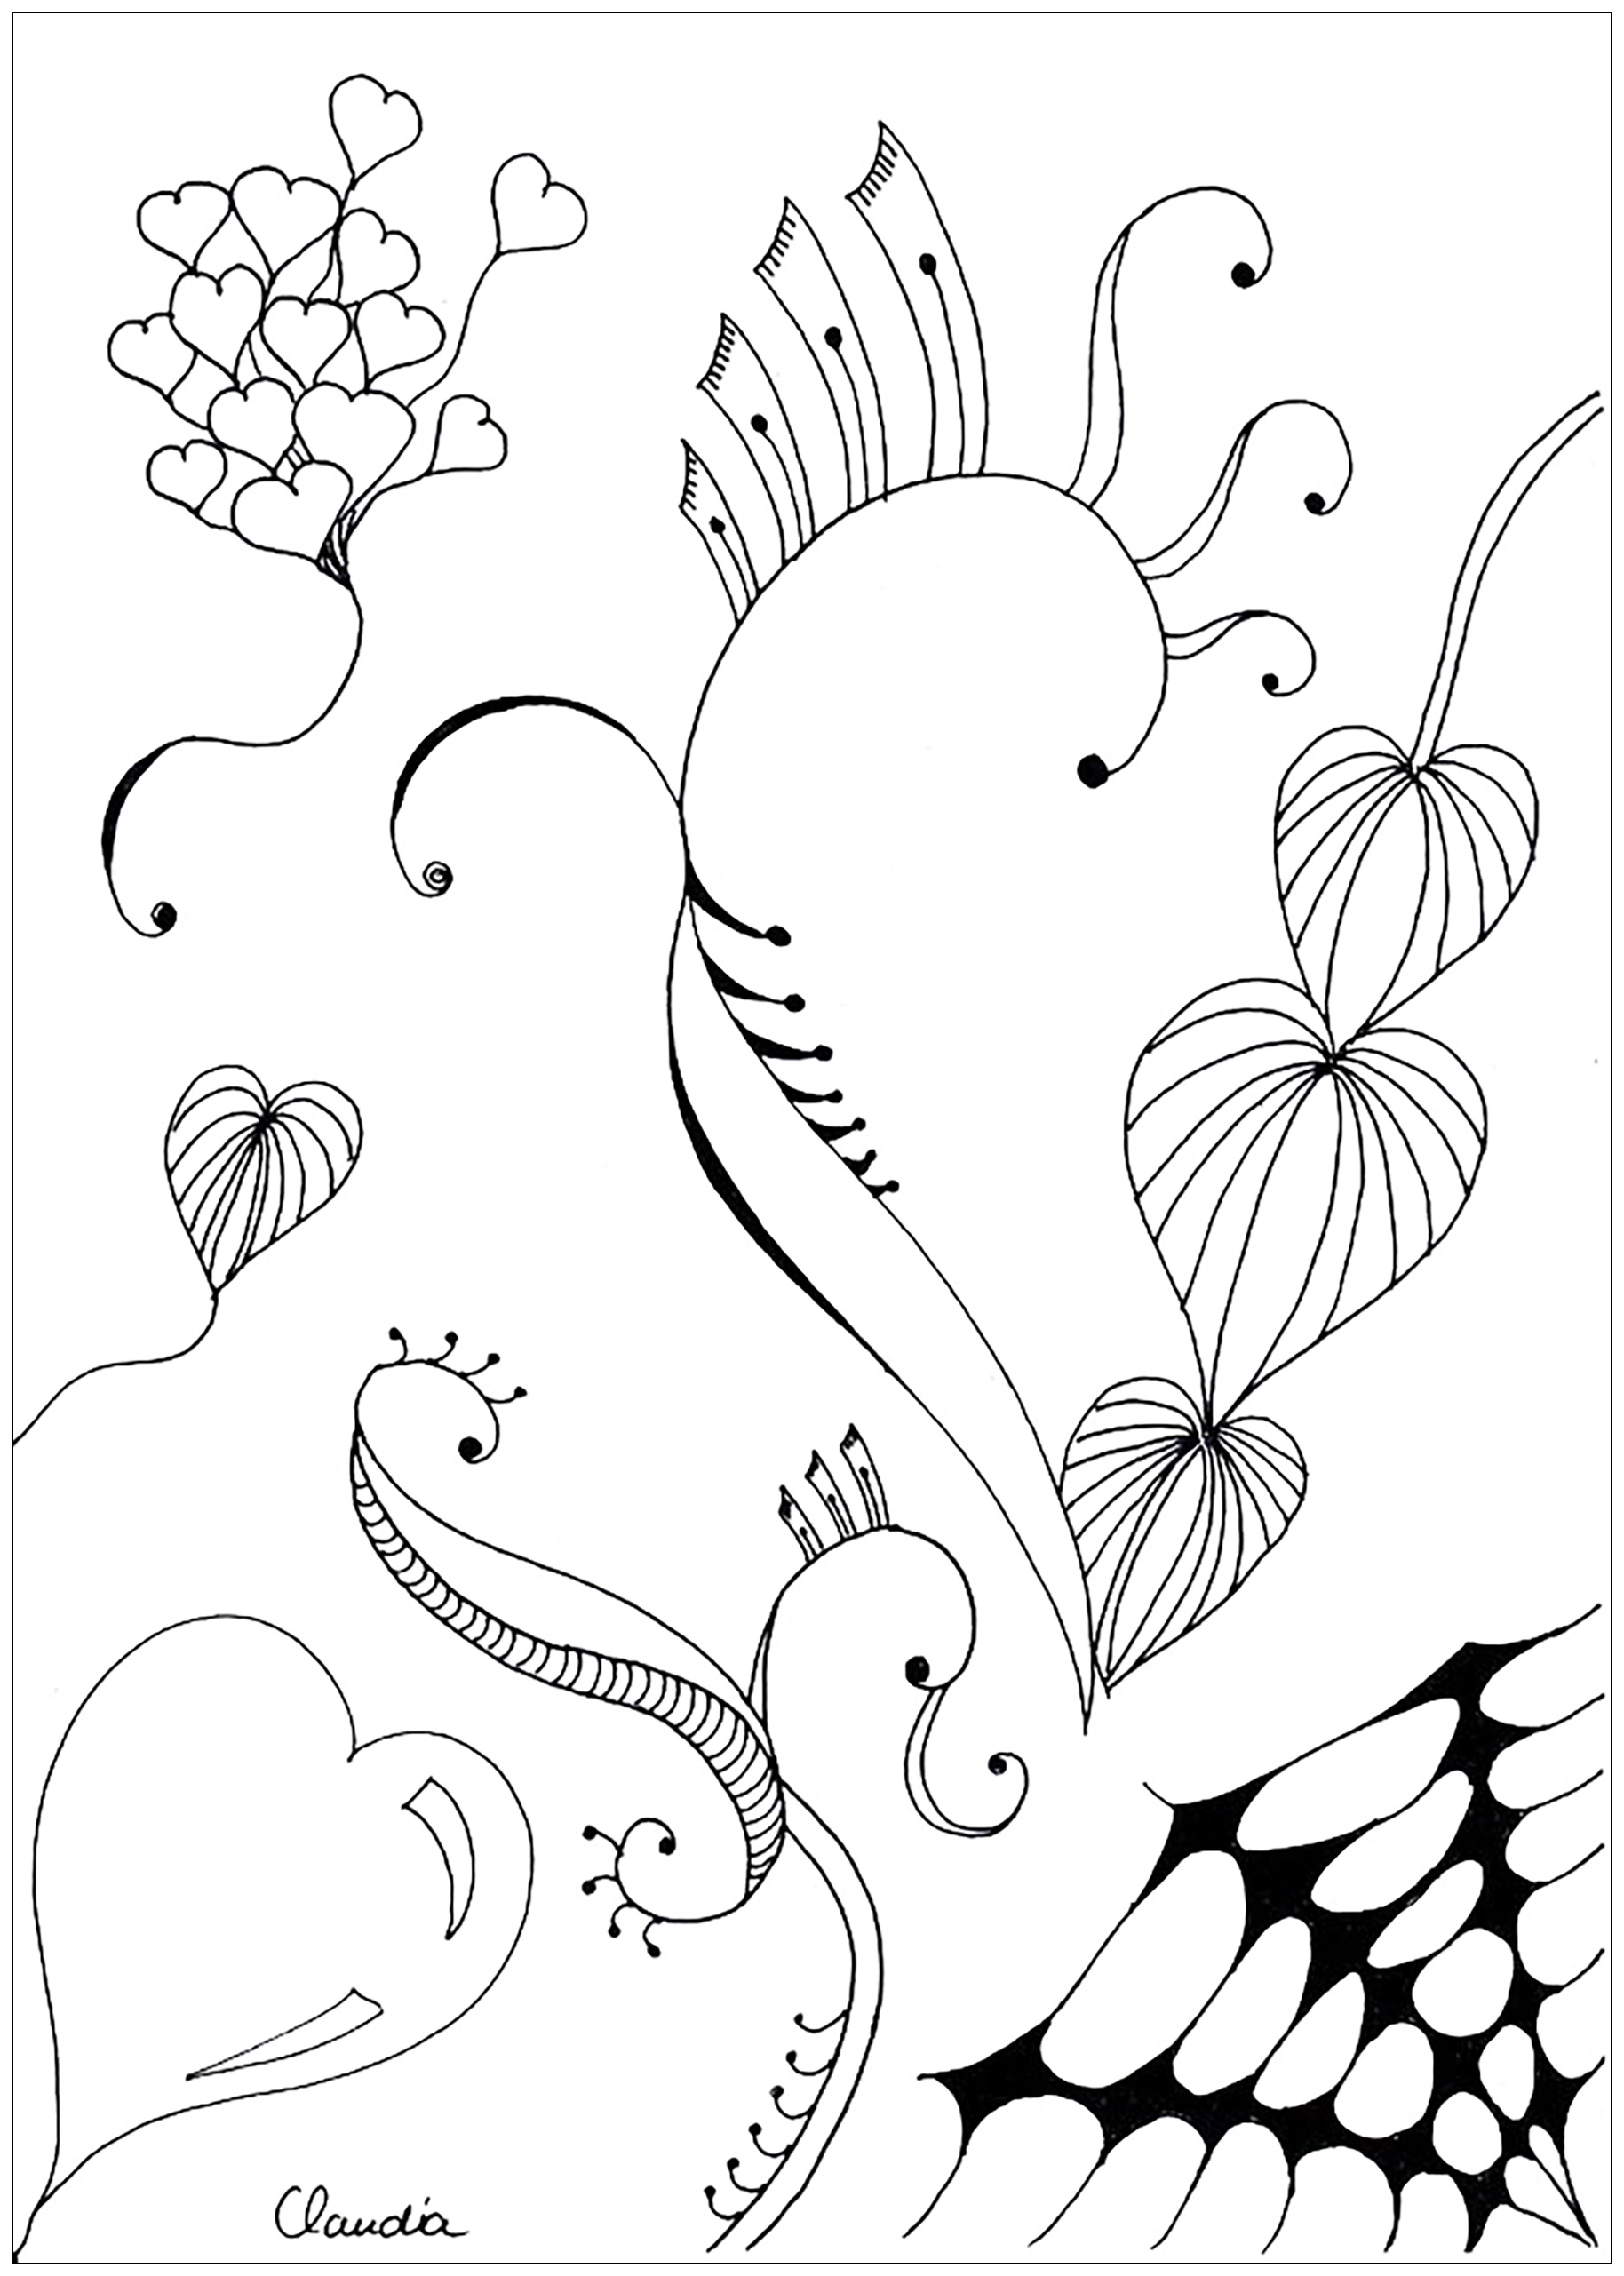 Coloring pages zentangle - Coloring Adult Zentangle Simple By Claudia 3 Free To Print